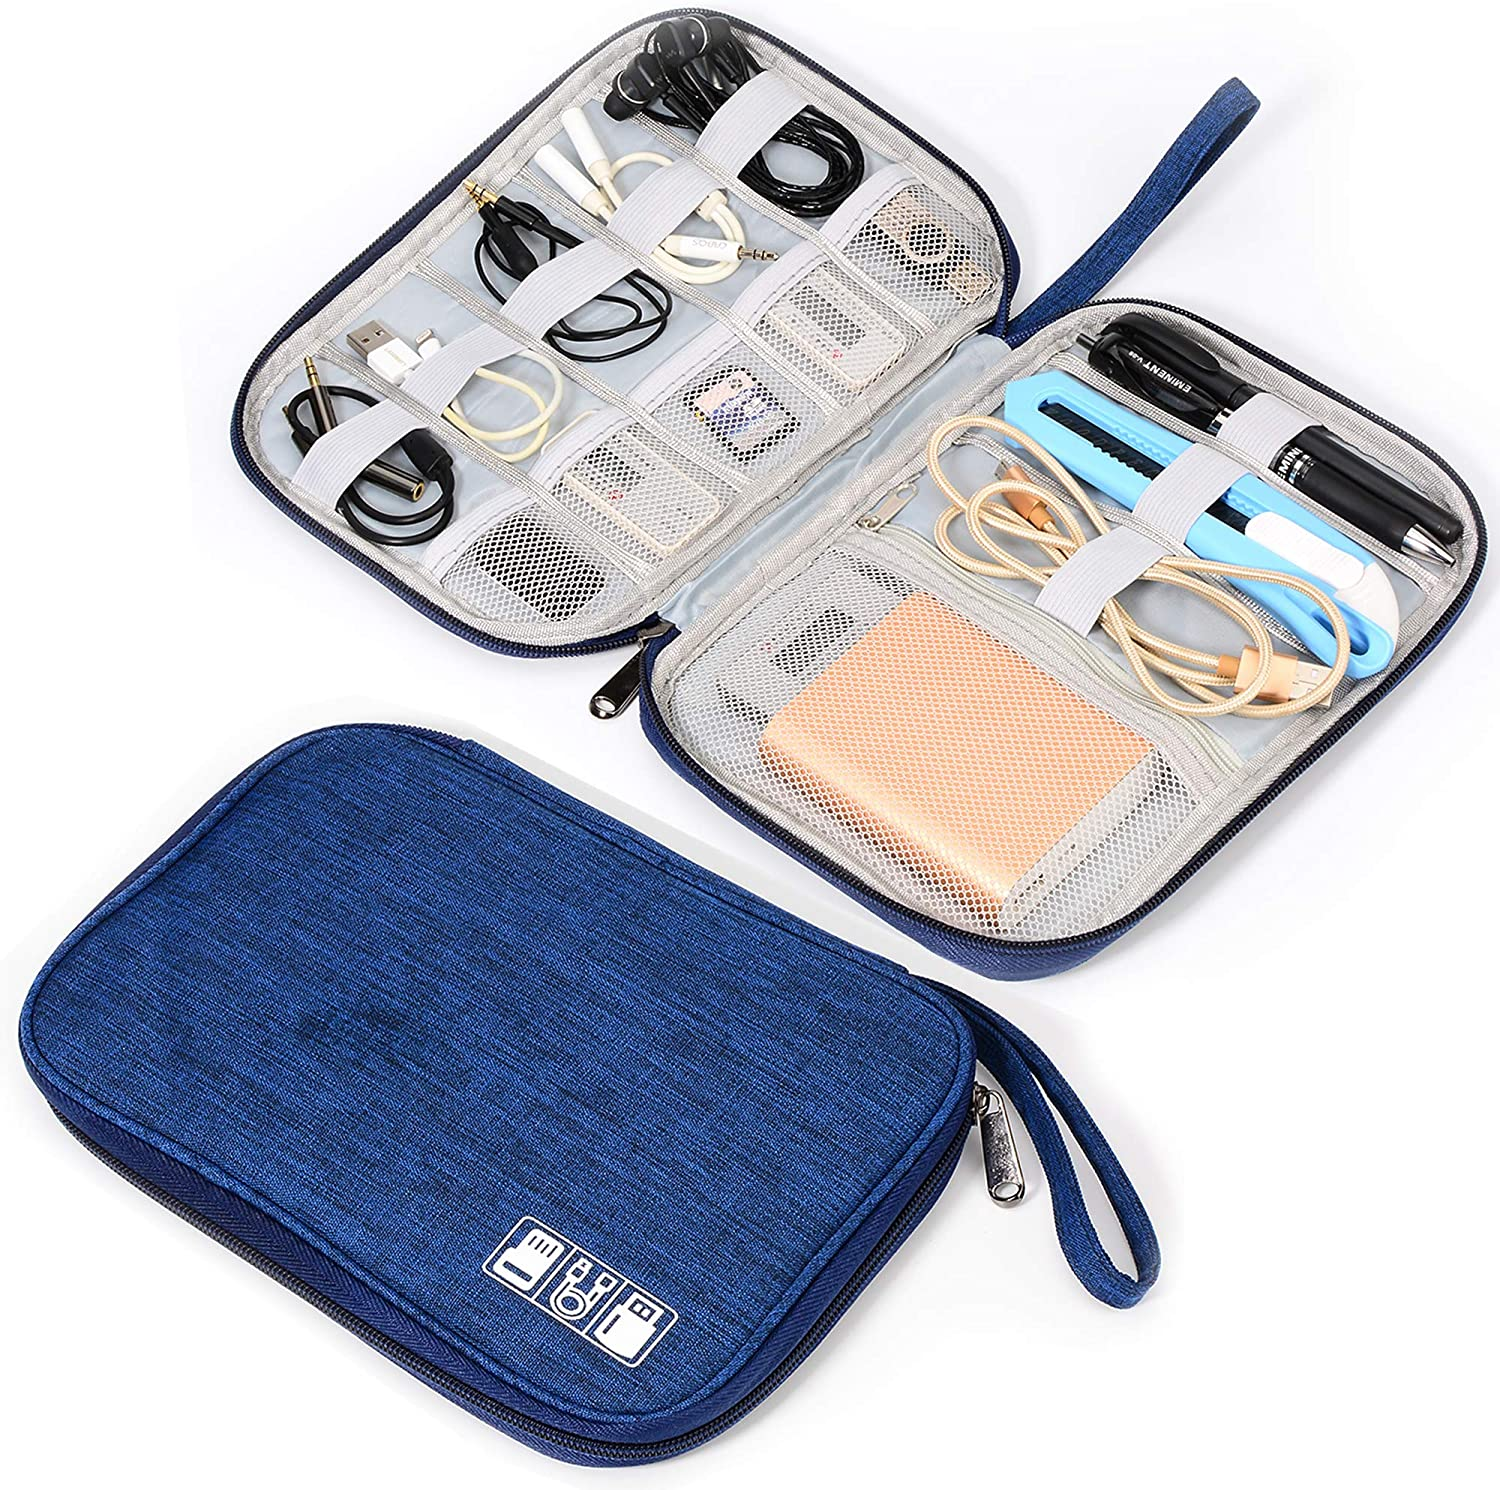 Electronic Organizer Travel Universal Waterproof Carrying Case Cable Organizer Electronics Accessories Cases for Cable Black Phone USB SD Card Charger